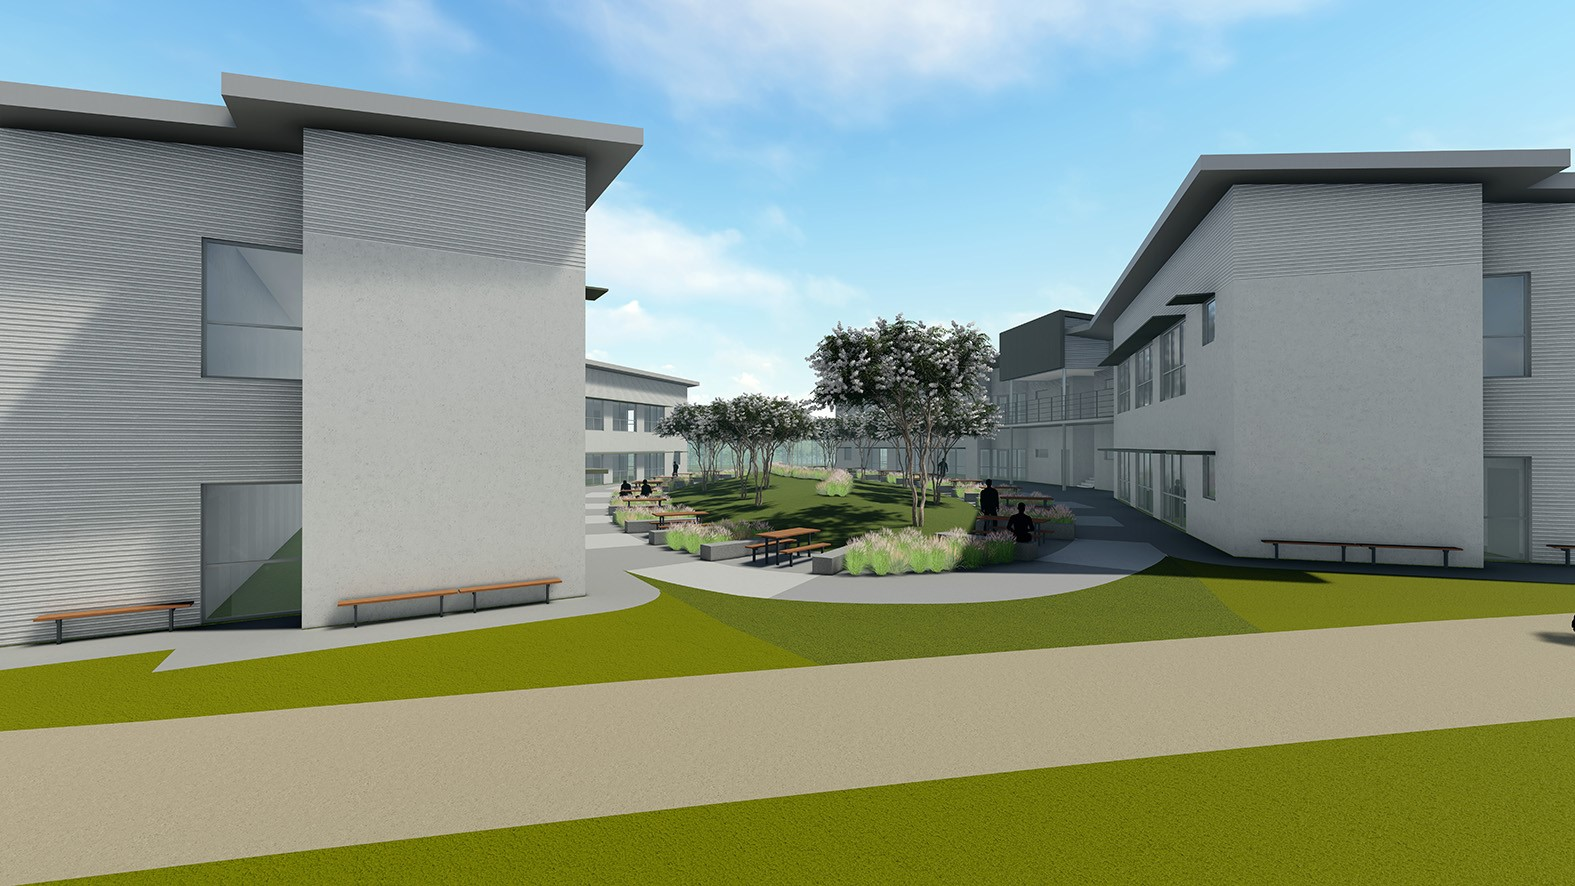 3d Modelled concept image of grafton correctional centre